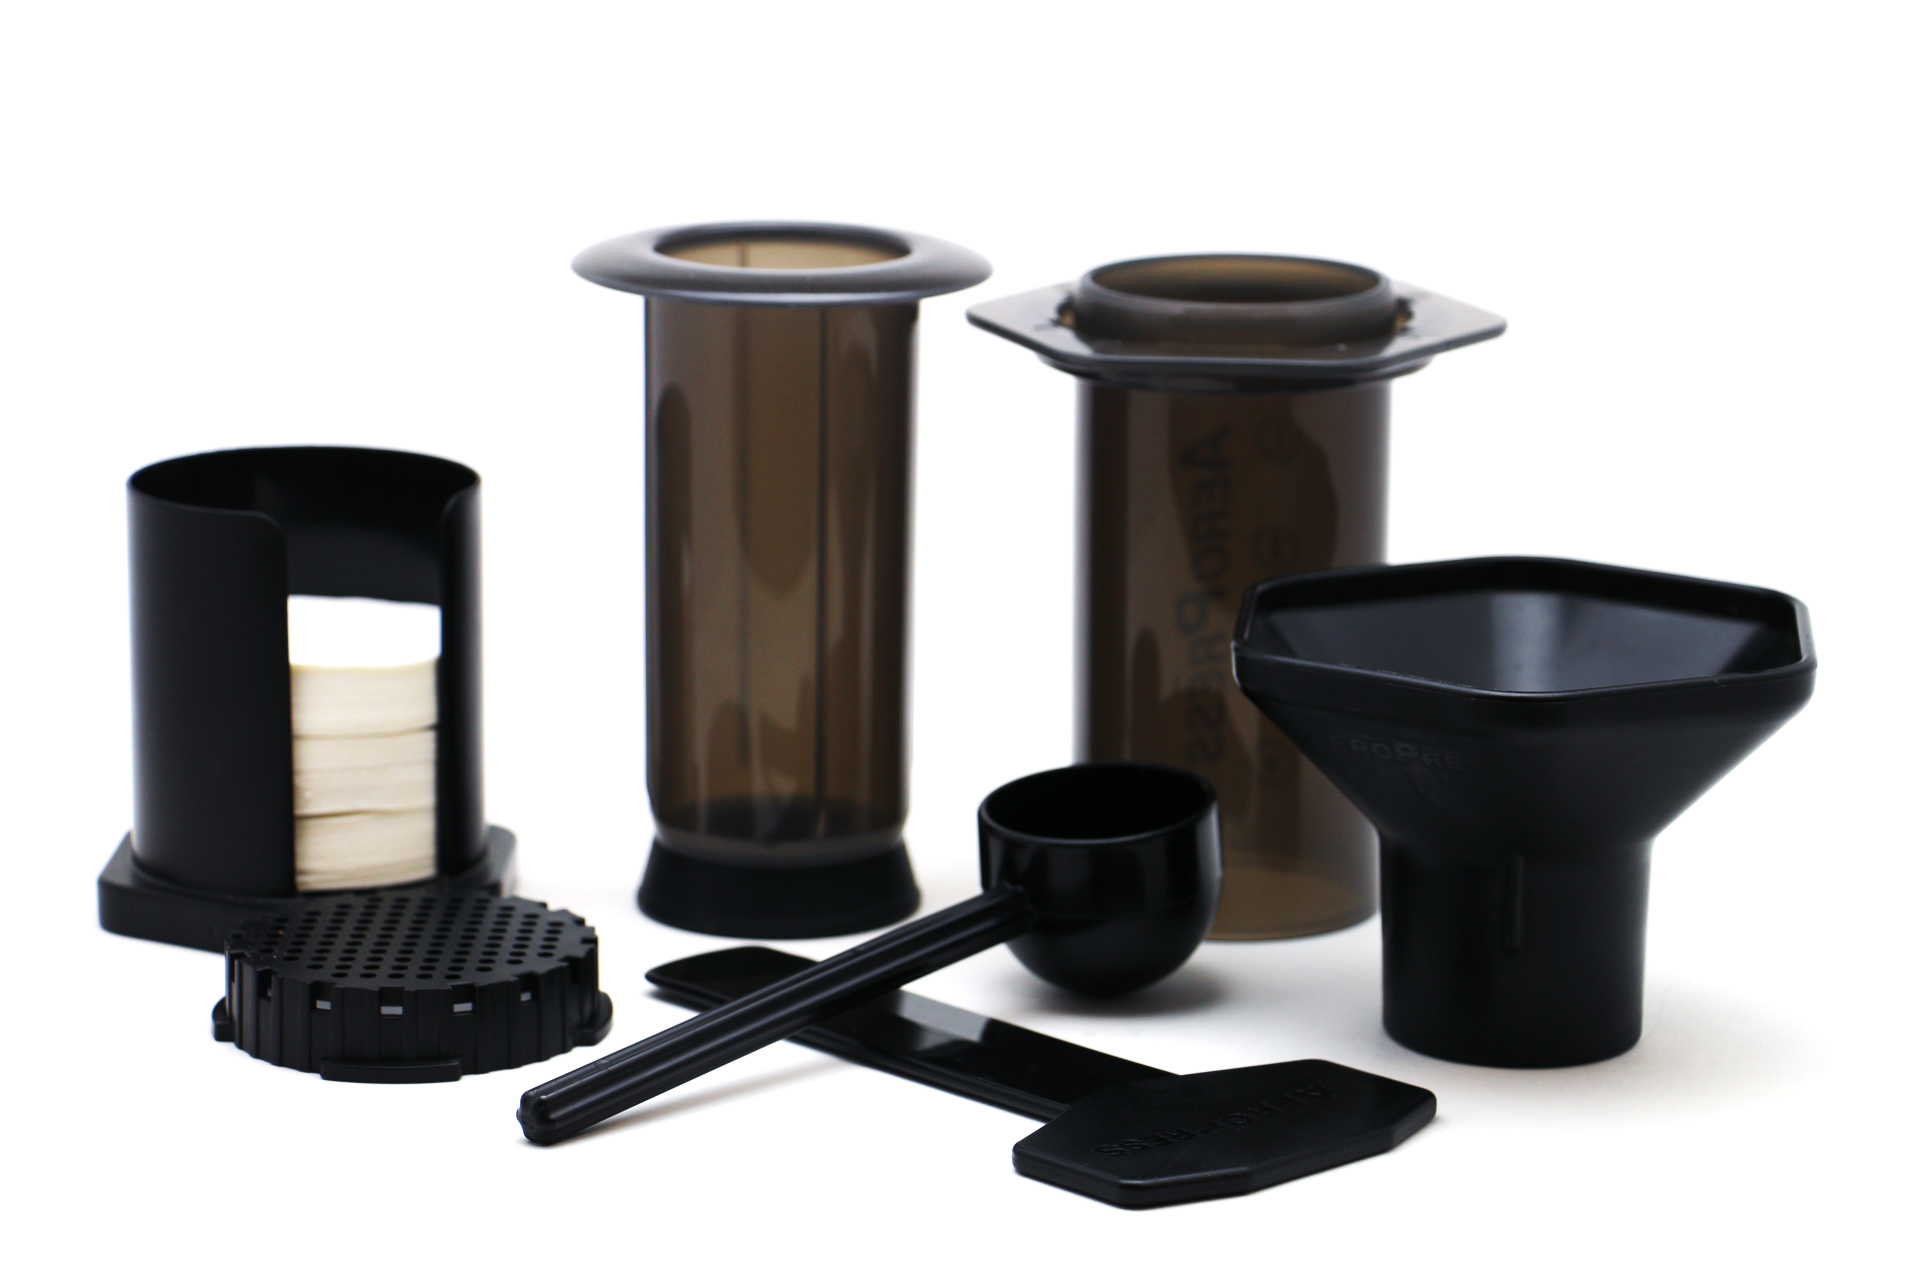 Aeropress Coffee Maker Glass : Featured Products